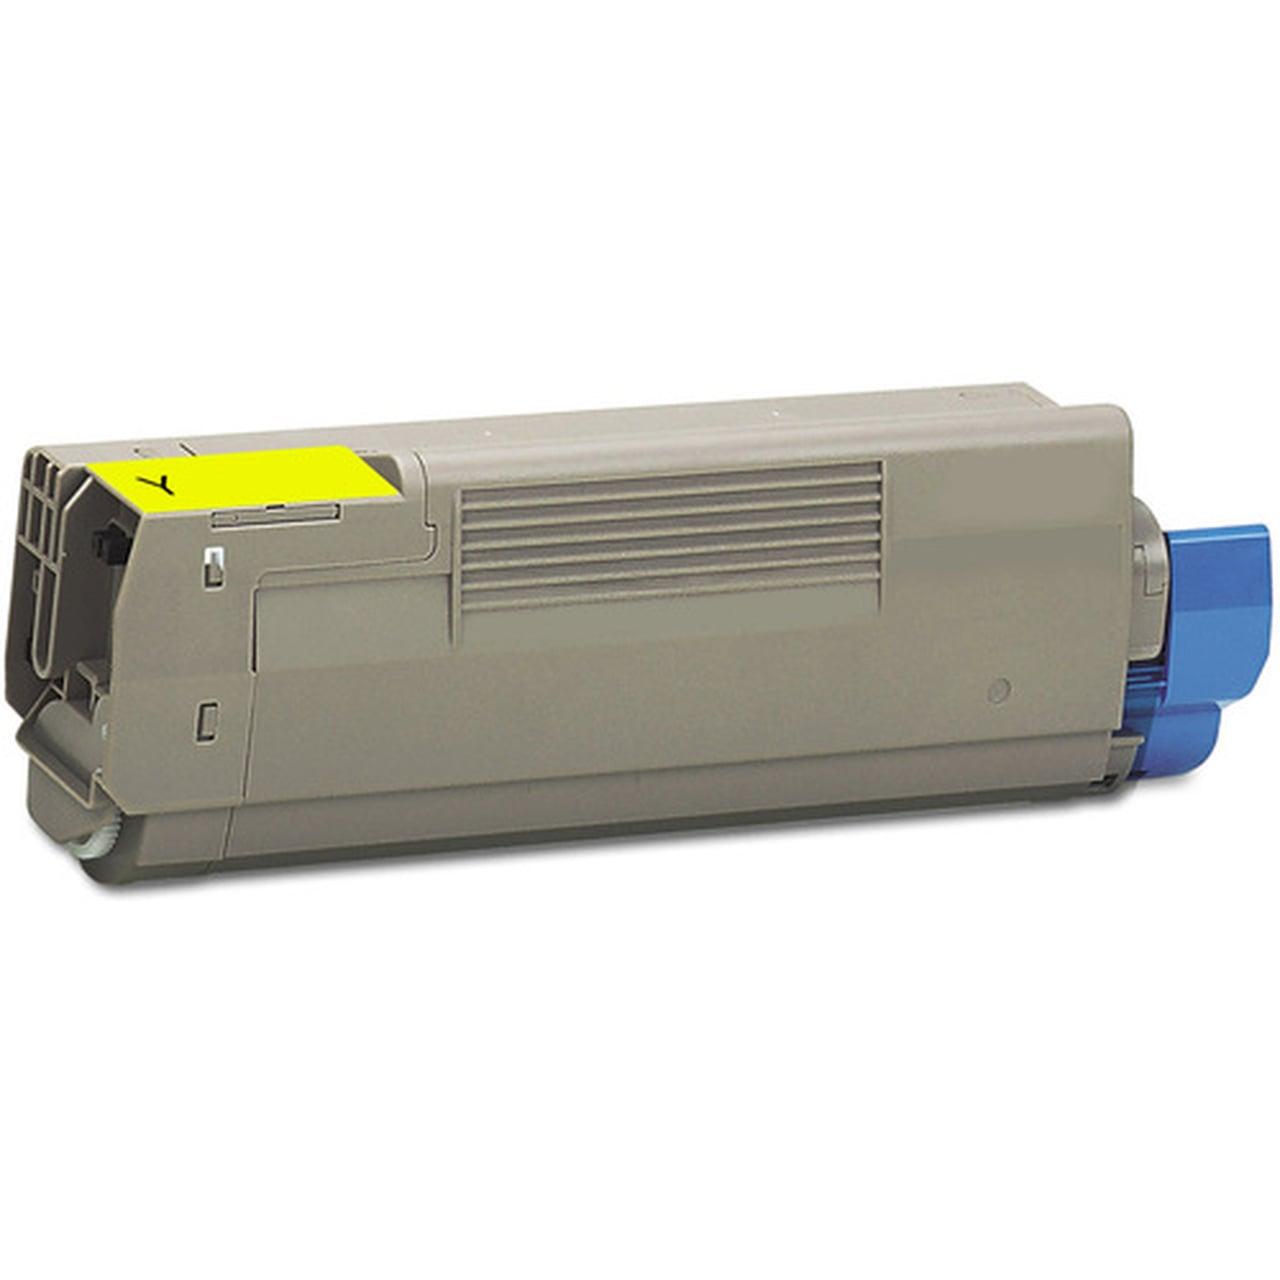 43324466 Toner Cartridge - Okidata Compatible (Yellow)